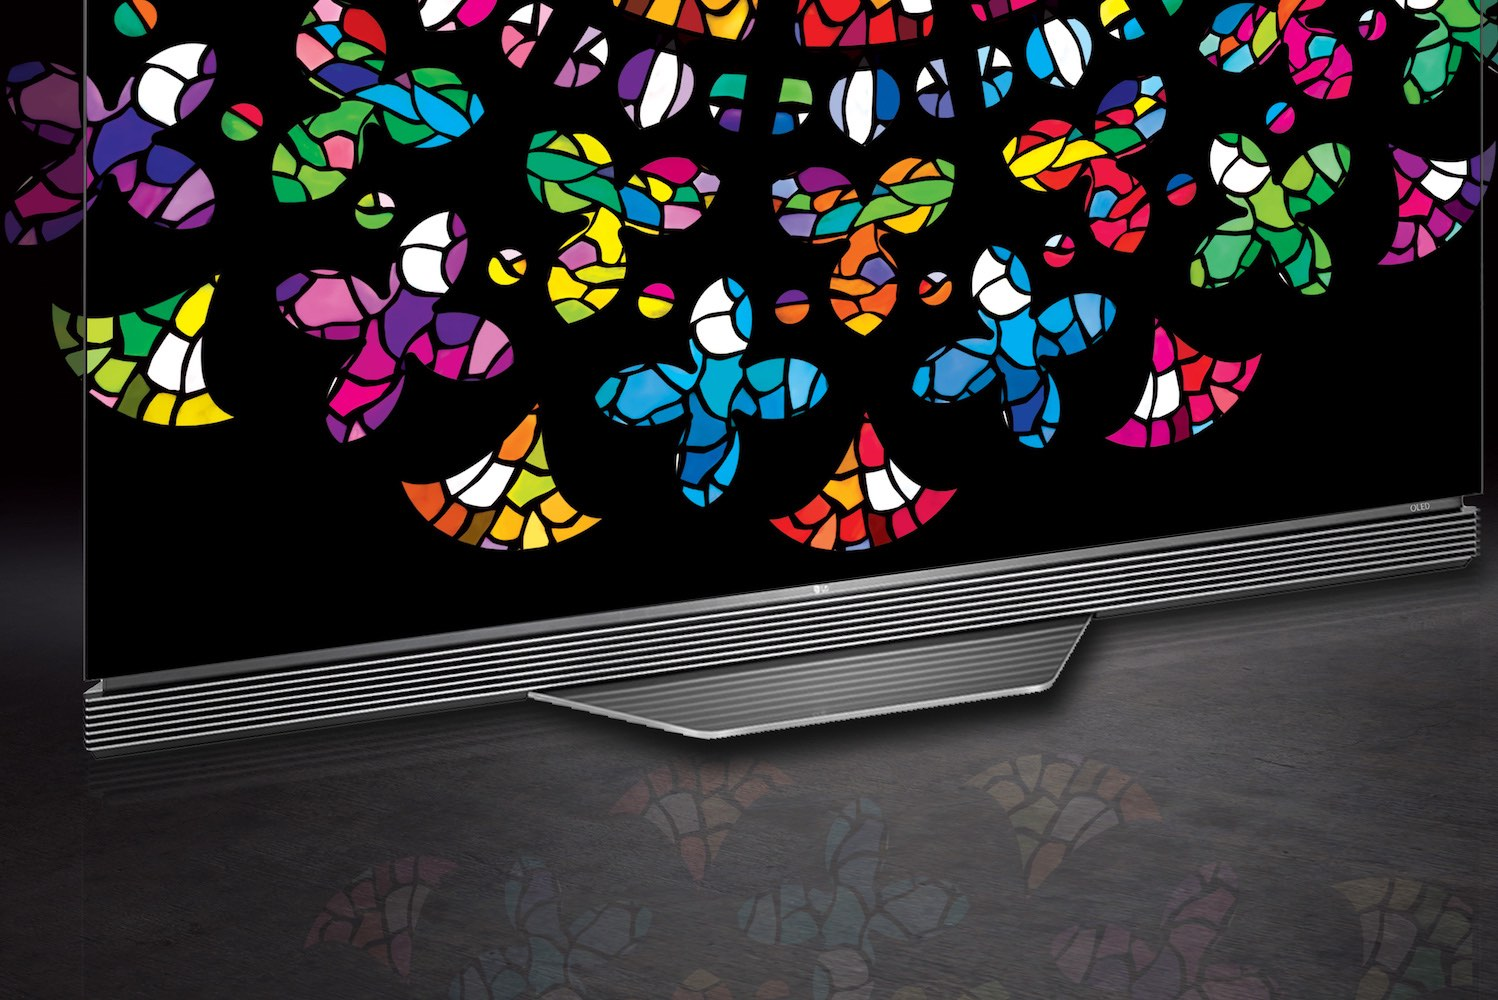 LG 65-Inch 4K Ultra HD Smart OLED TV